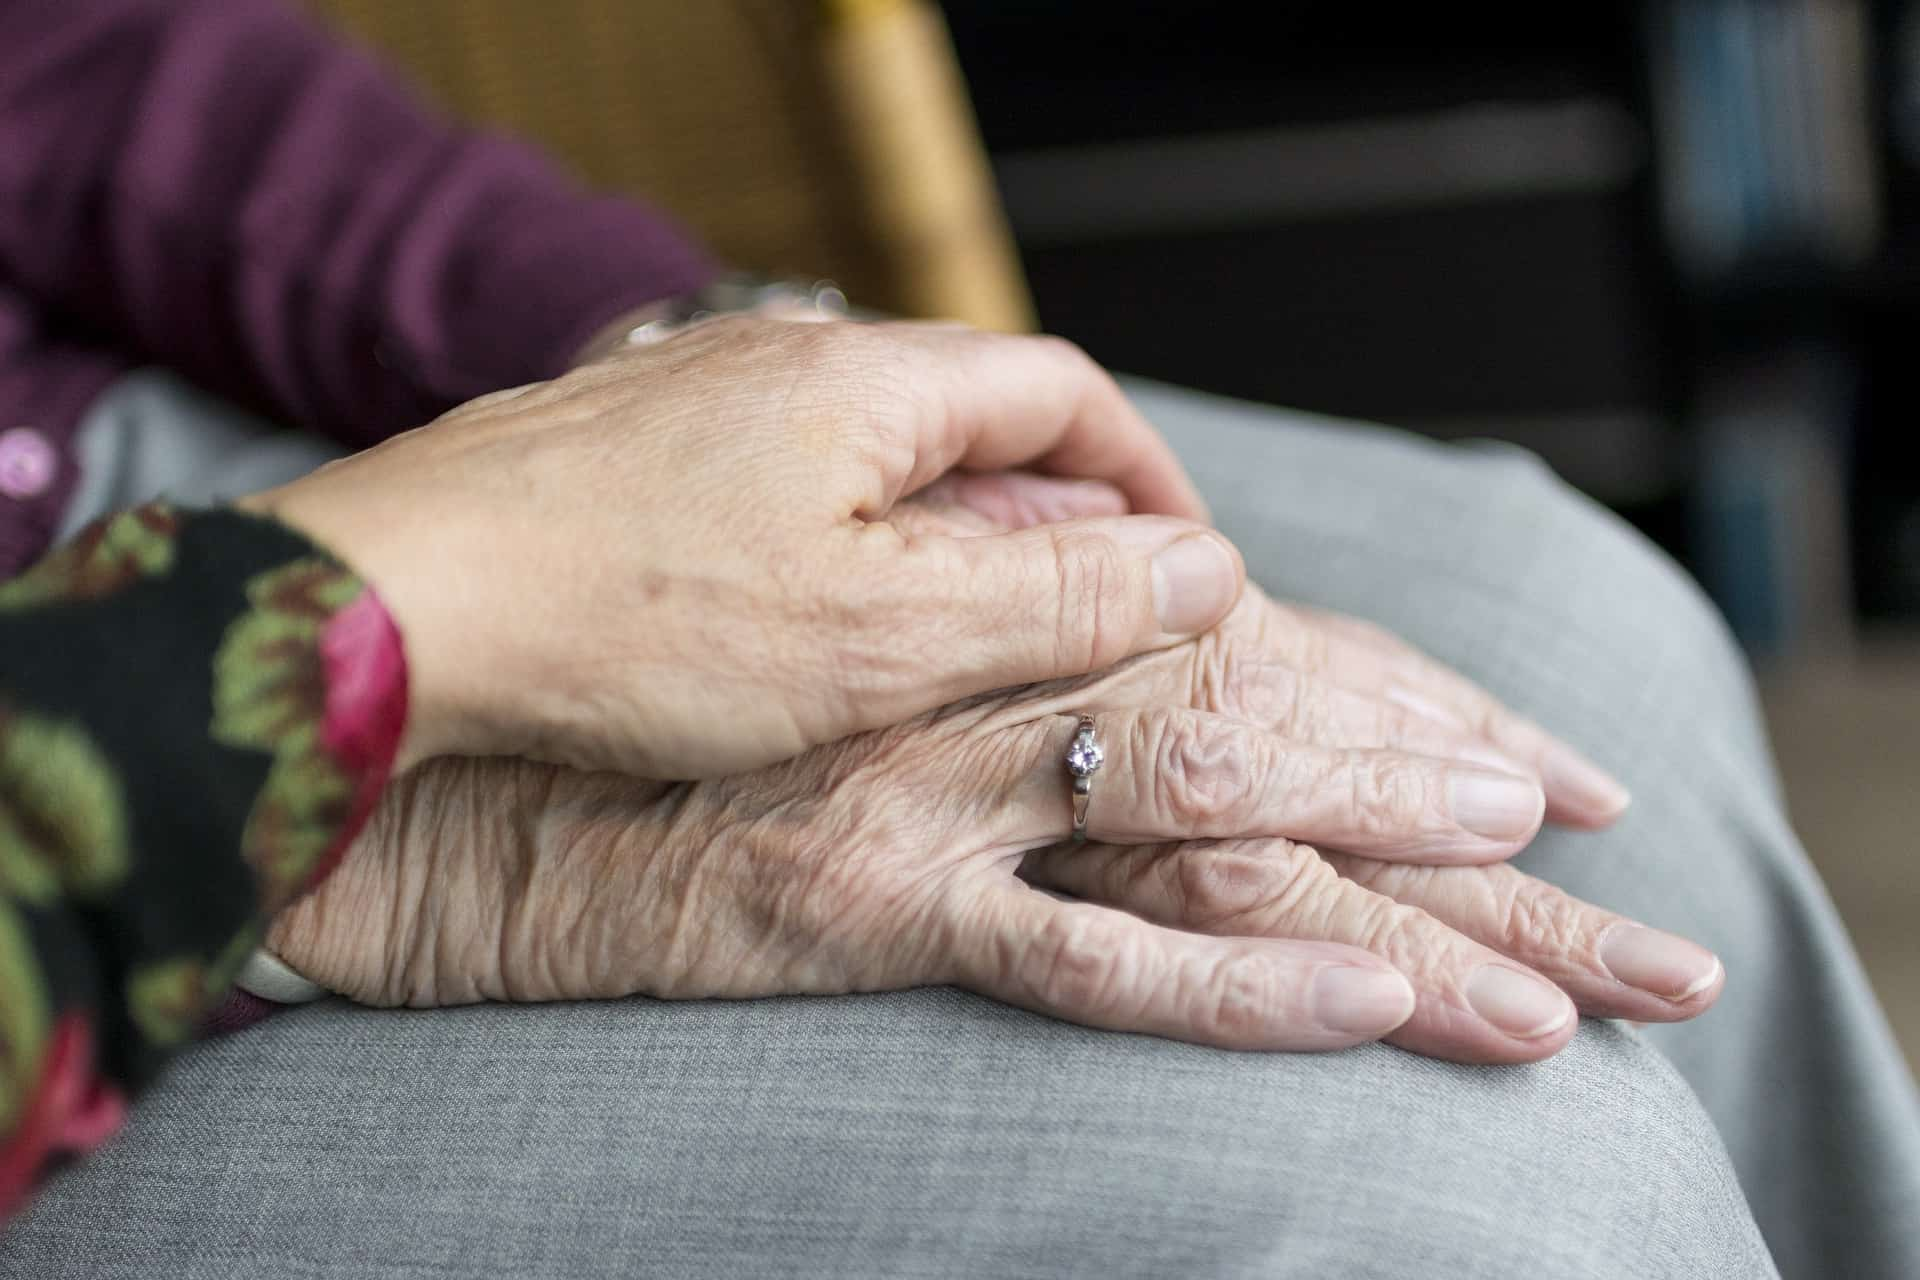 Finding the right care for someone with dementia